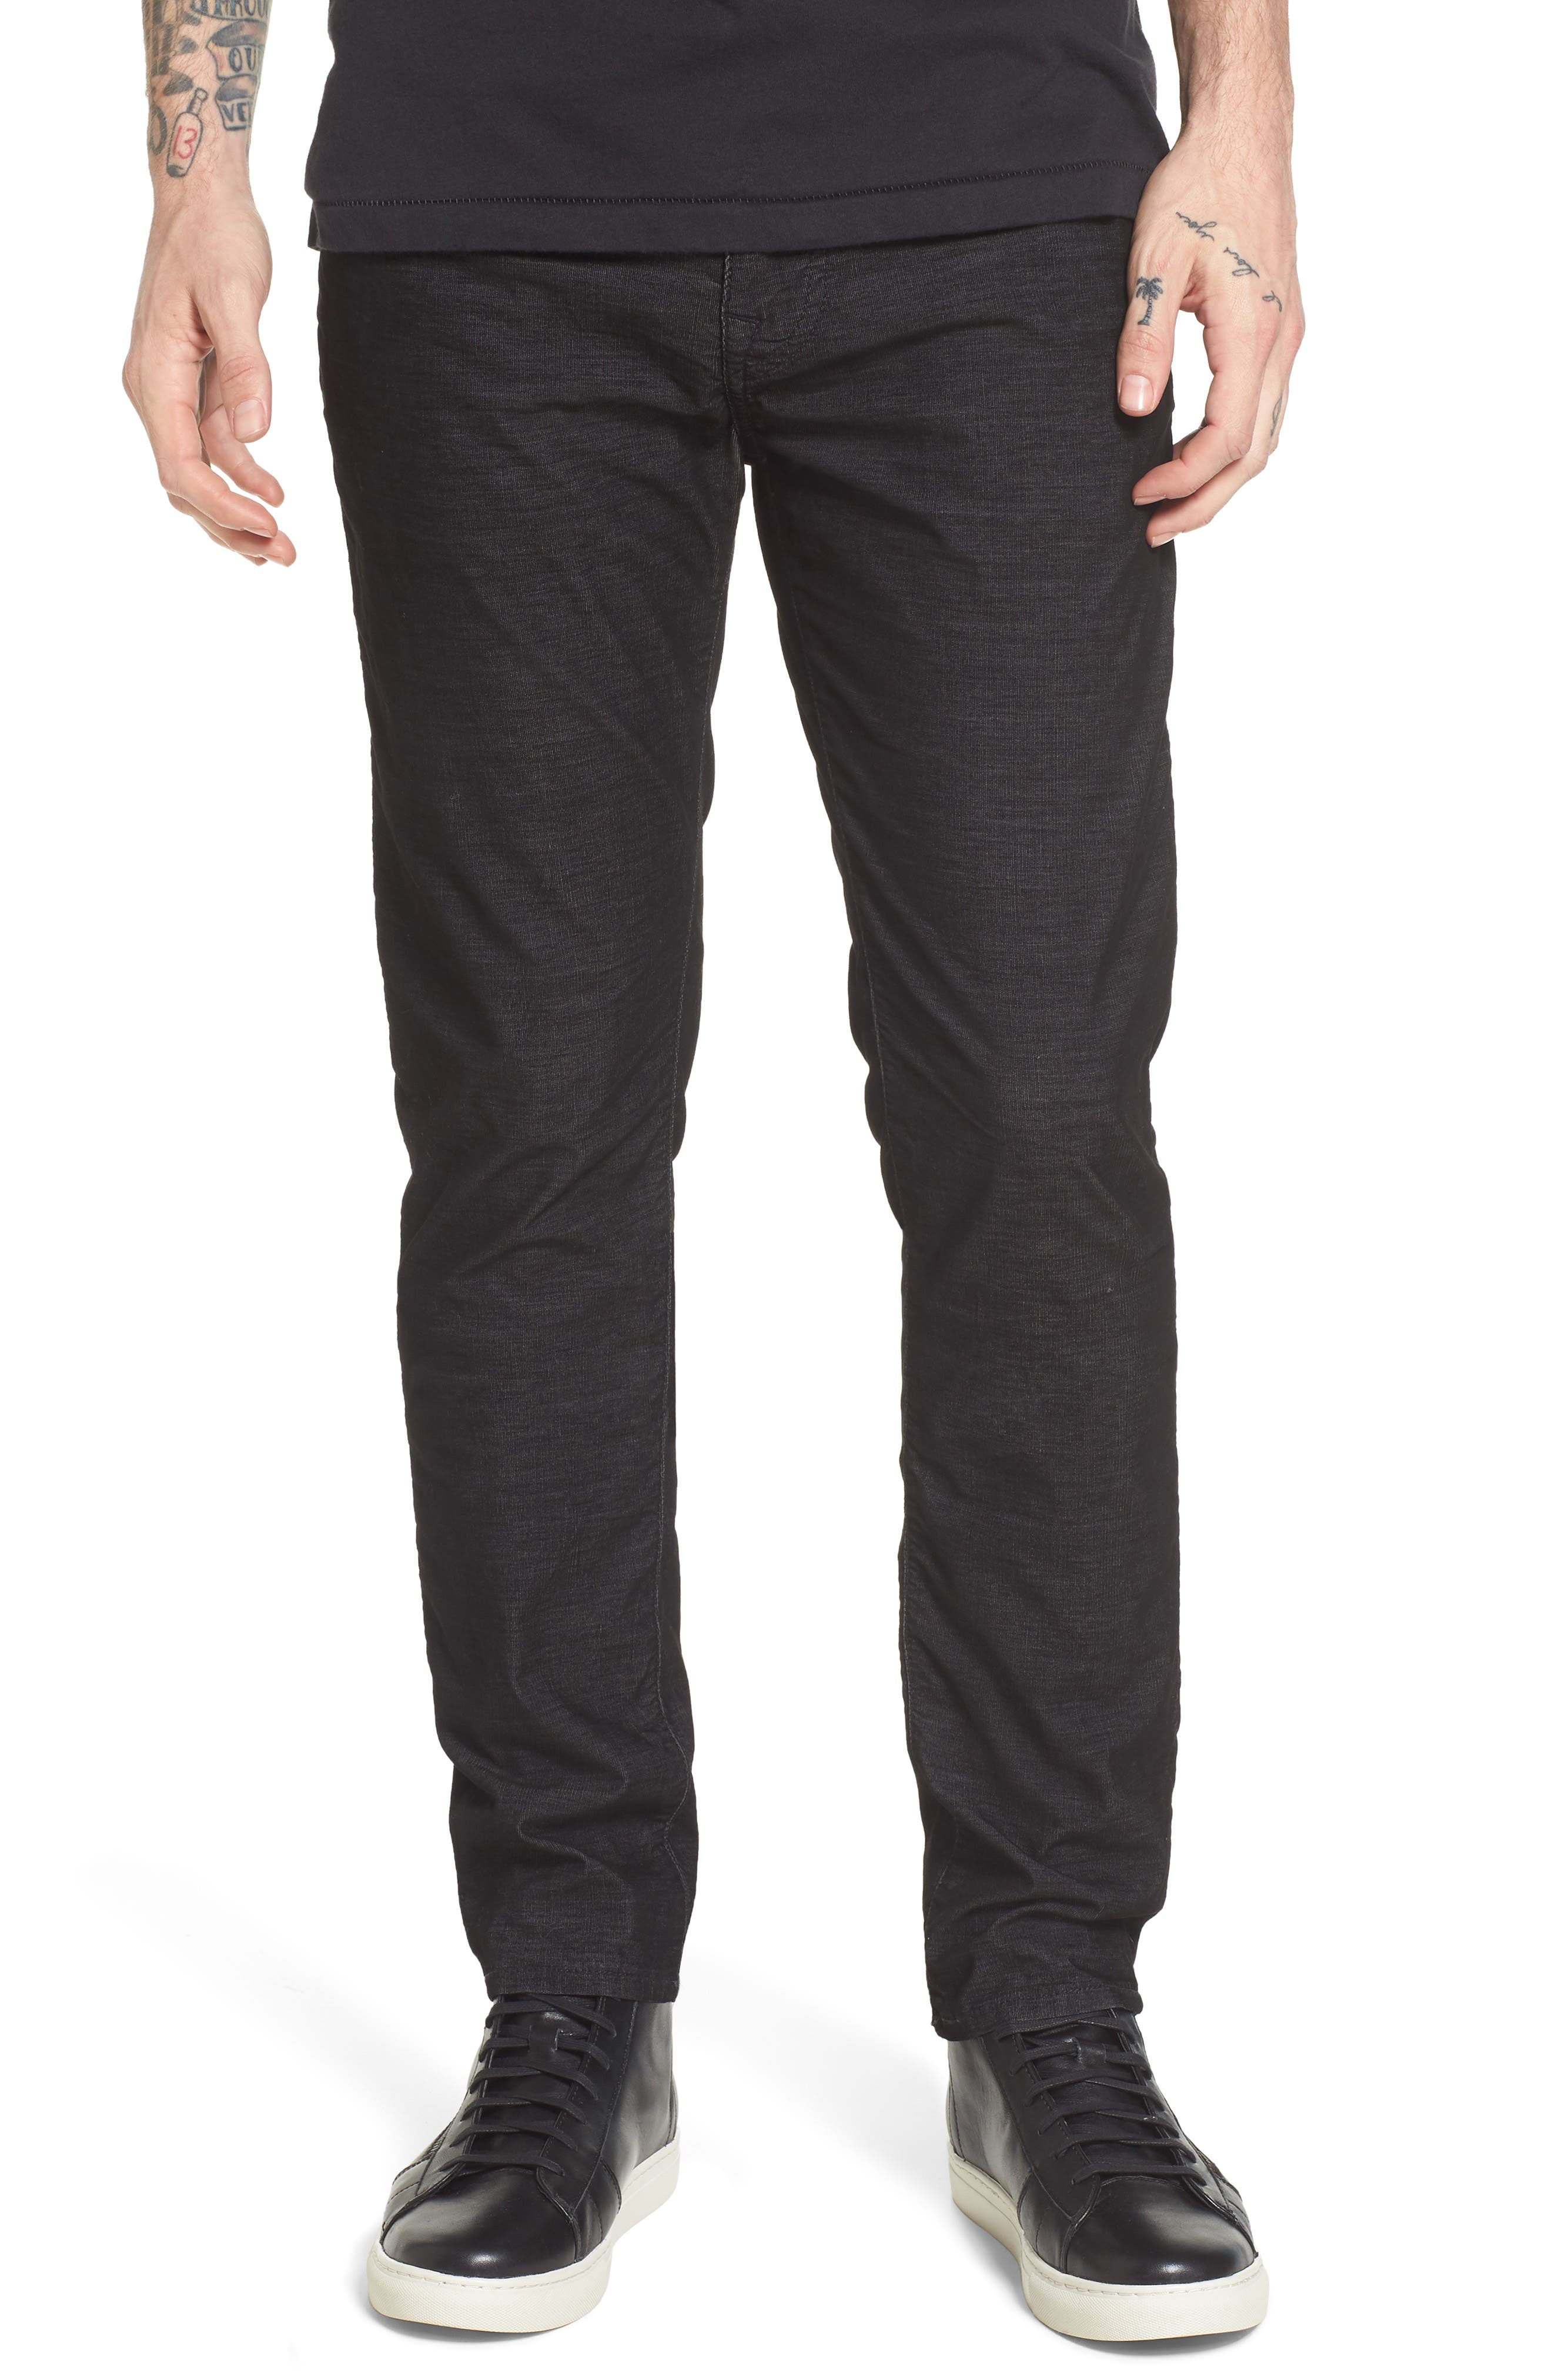 Rocco Skinny Fit Corduroy Jeans,                             Main thumbnail 1, color,                             001